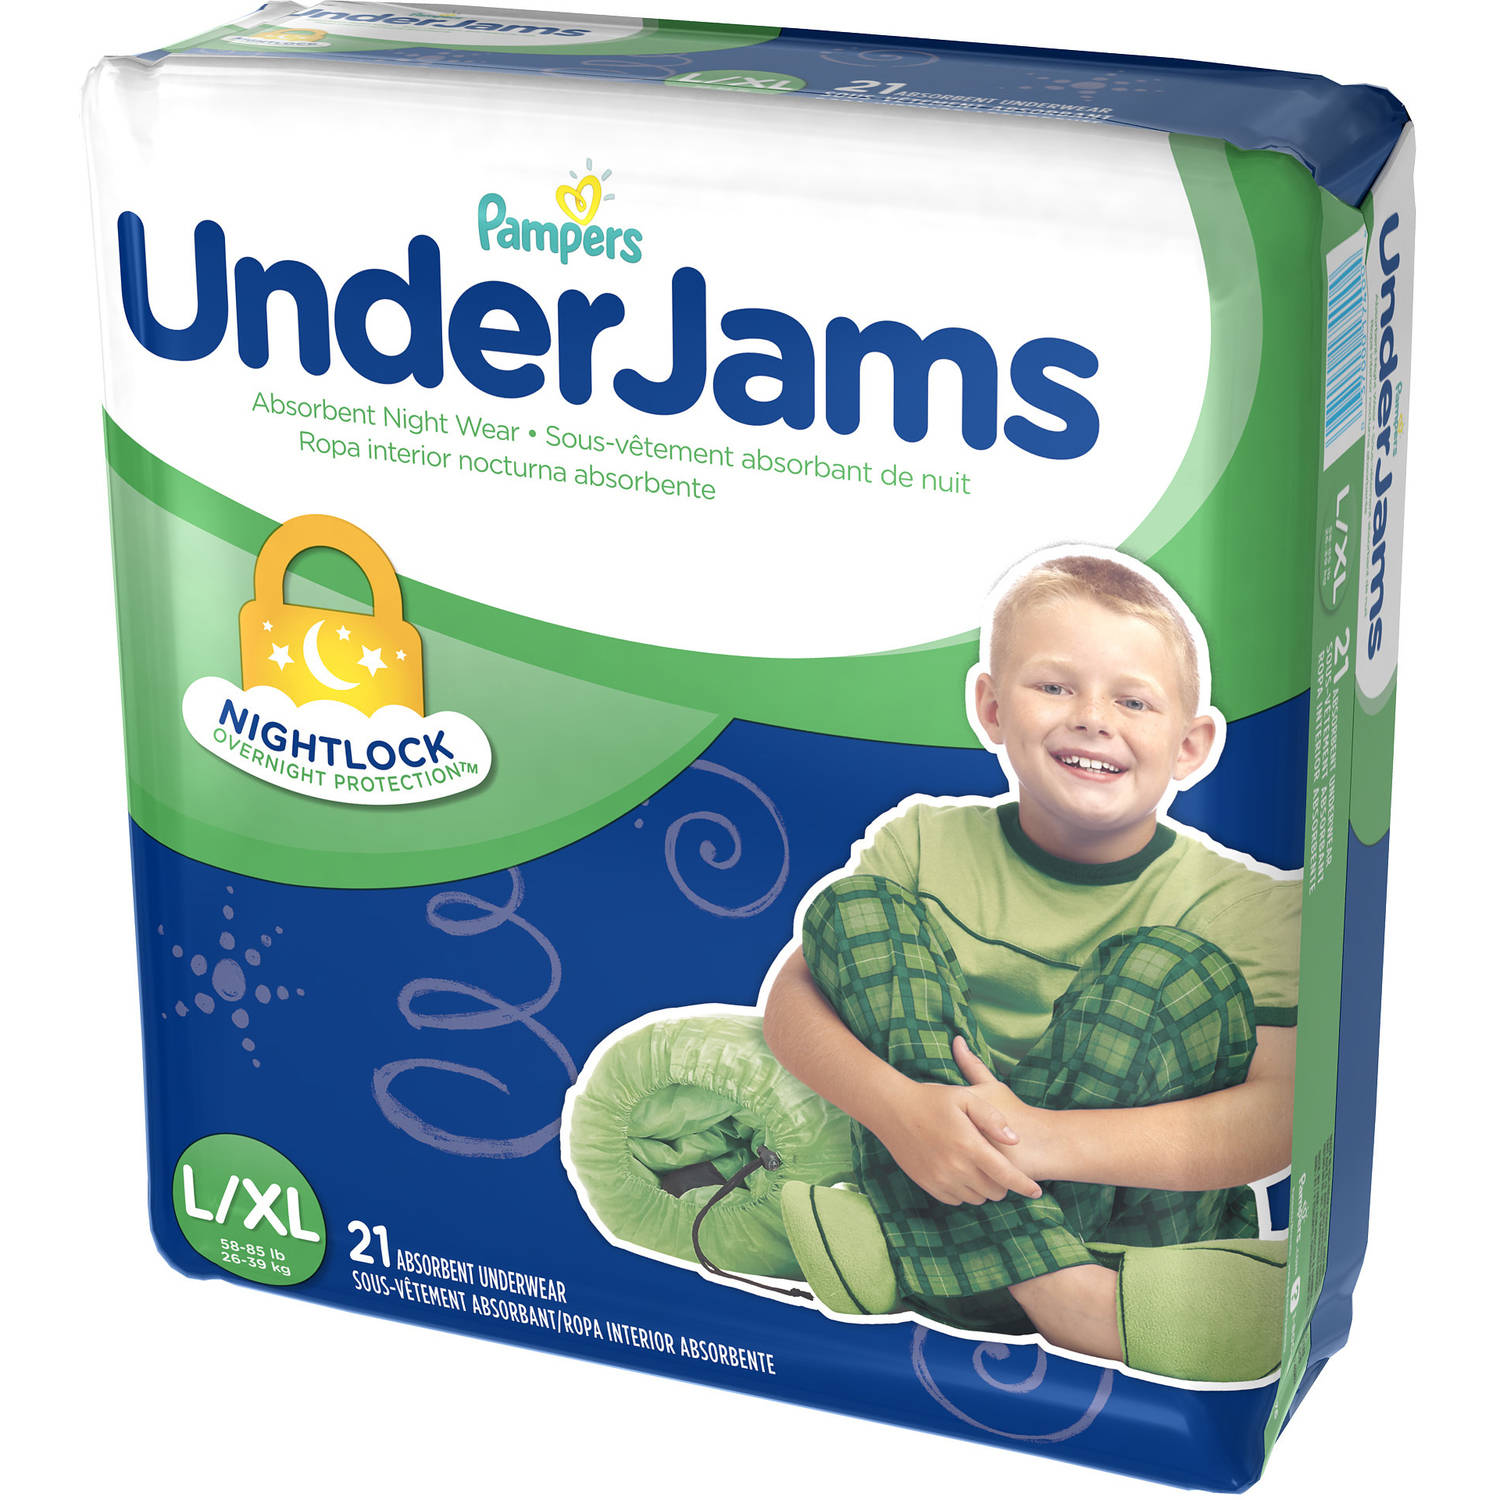 Pampers - Boys Underjams Absorbent Underwear Mega Pack 21 Count, Size L/XL